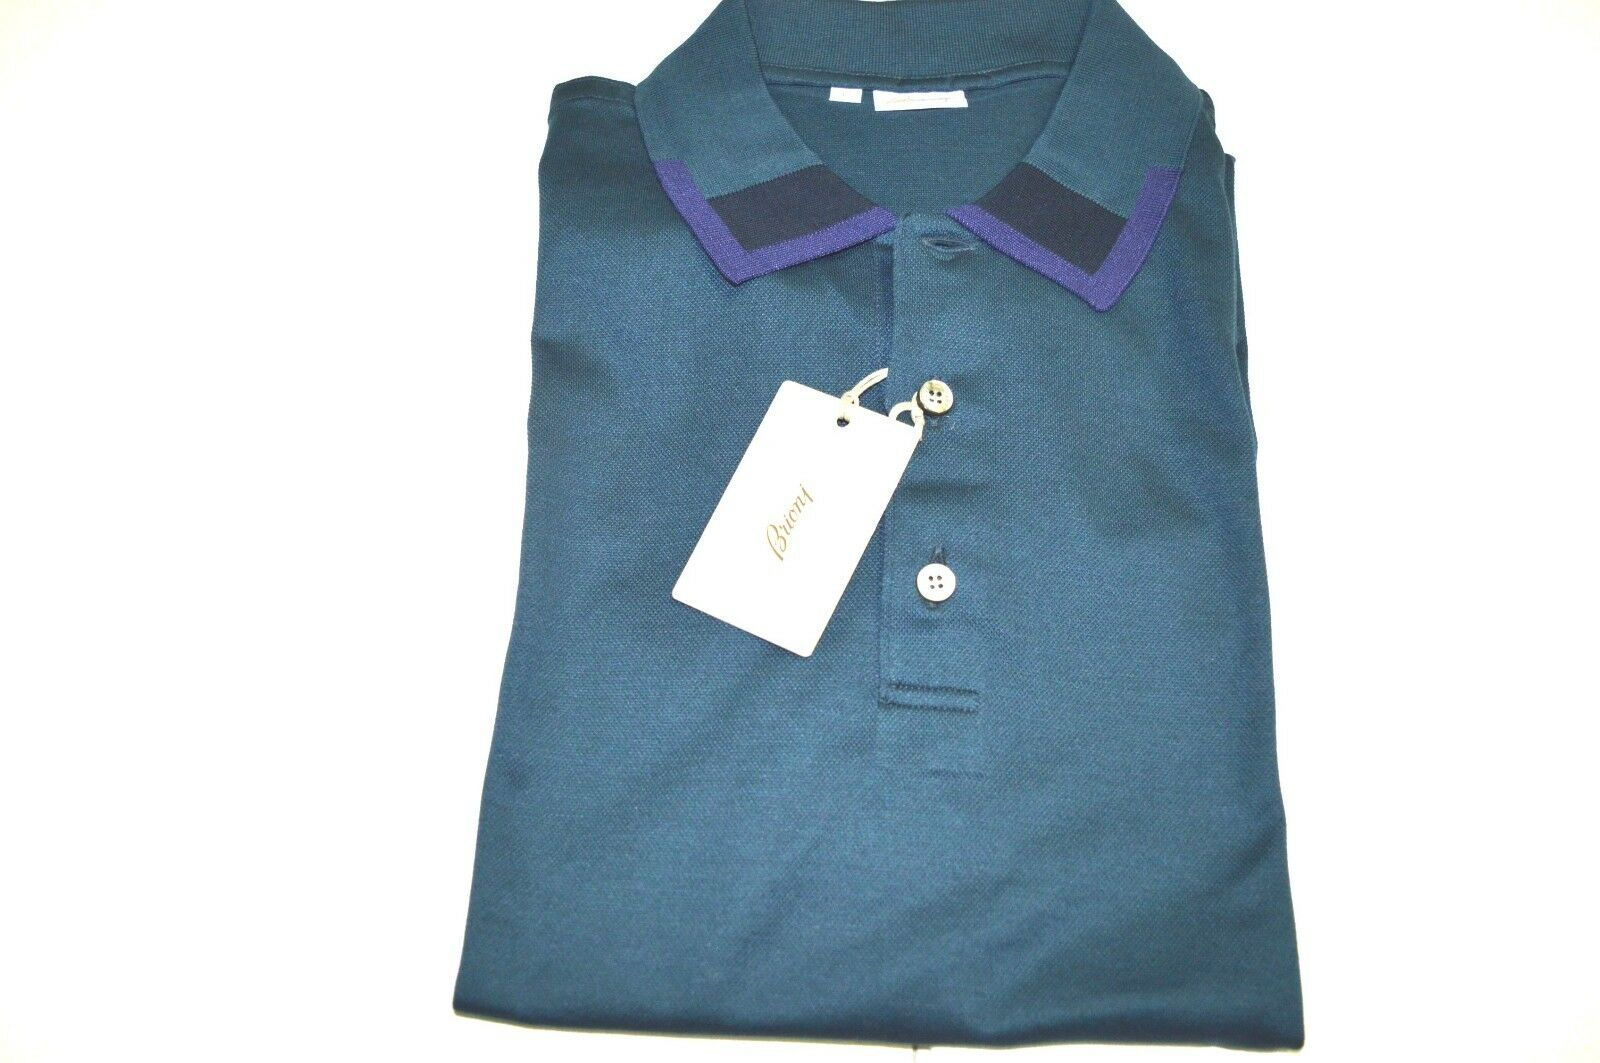 NEW  BRIONI Polo  Short Sleeve baumwolle Größe  L Us Eu 52  (SSG16)